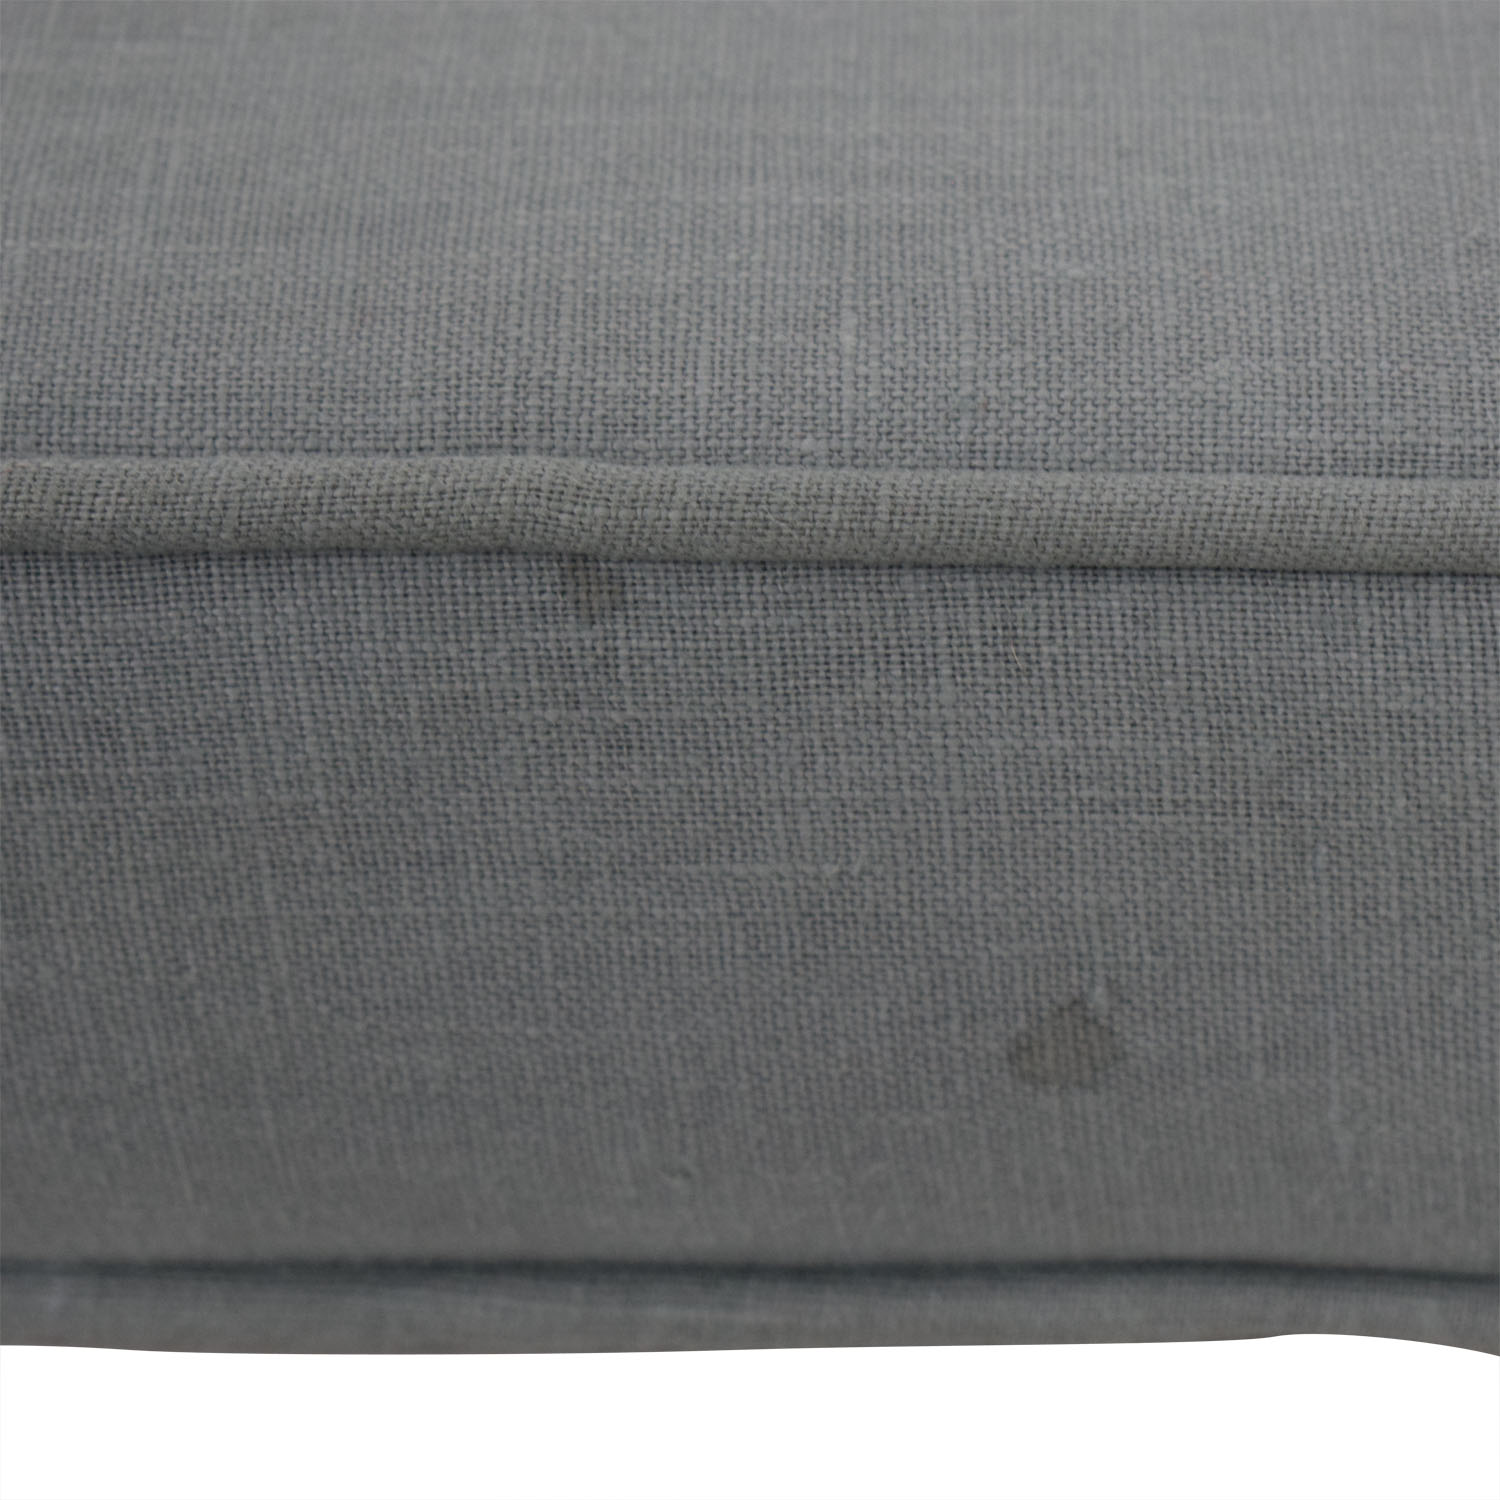 Home Goods Grey Upholstered and White Bench with Four Storage Boxes Home Goods